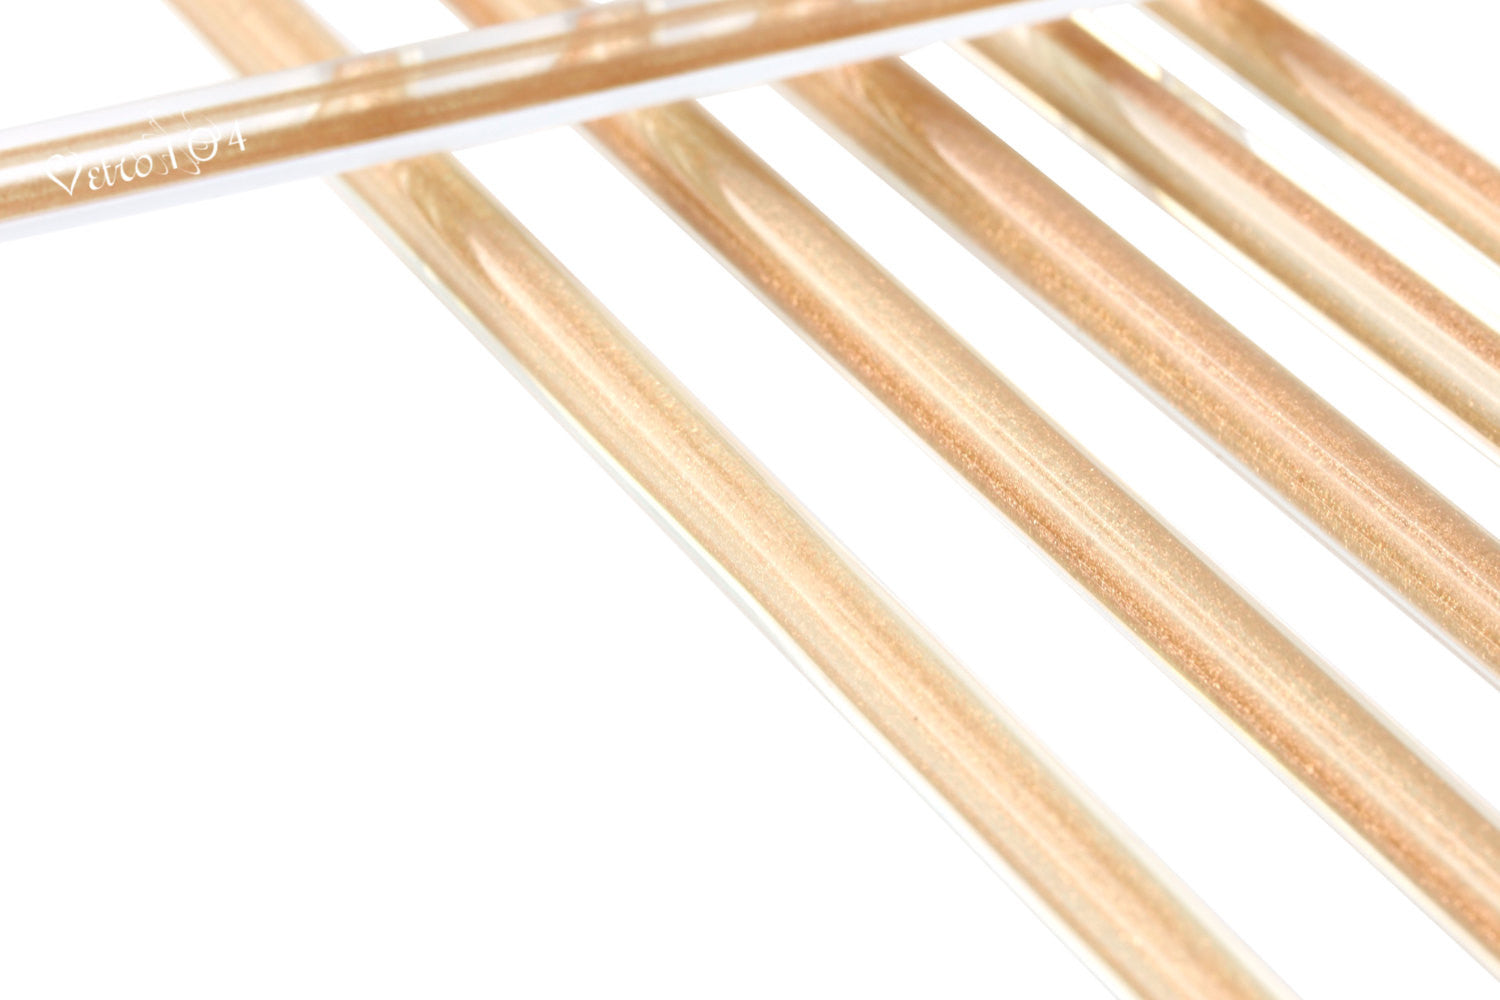 Lauscha Black Opaque SNO480 glass rods for lampwork | Shop ...